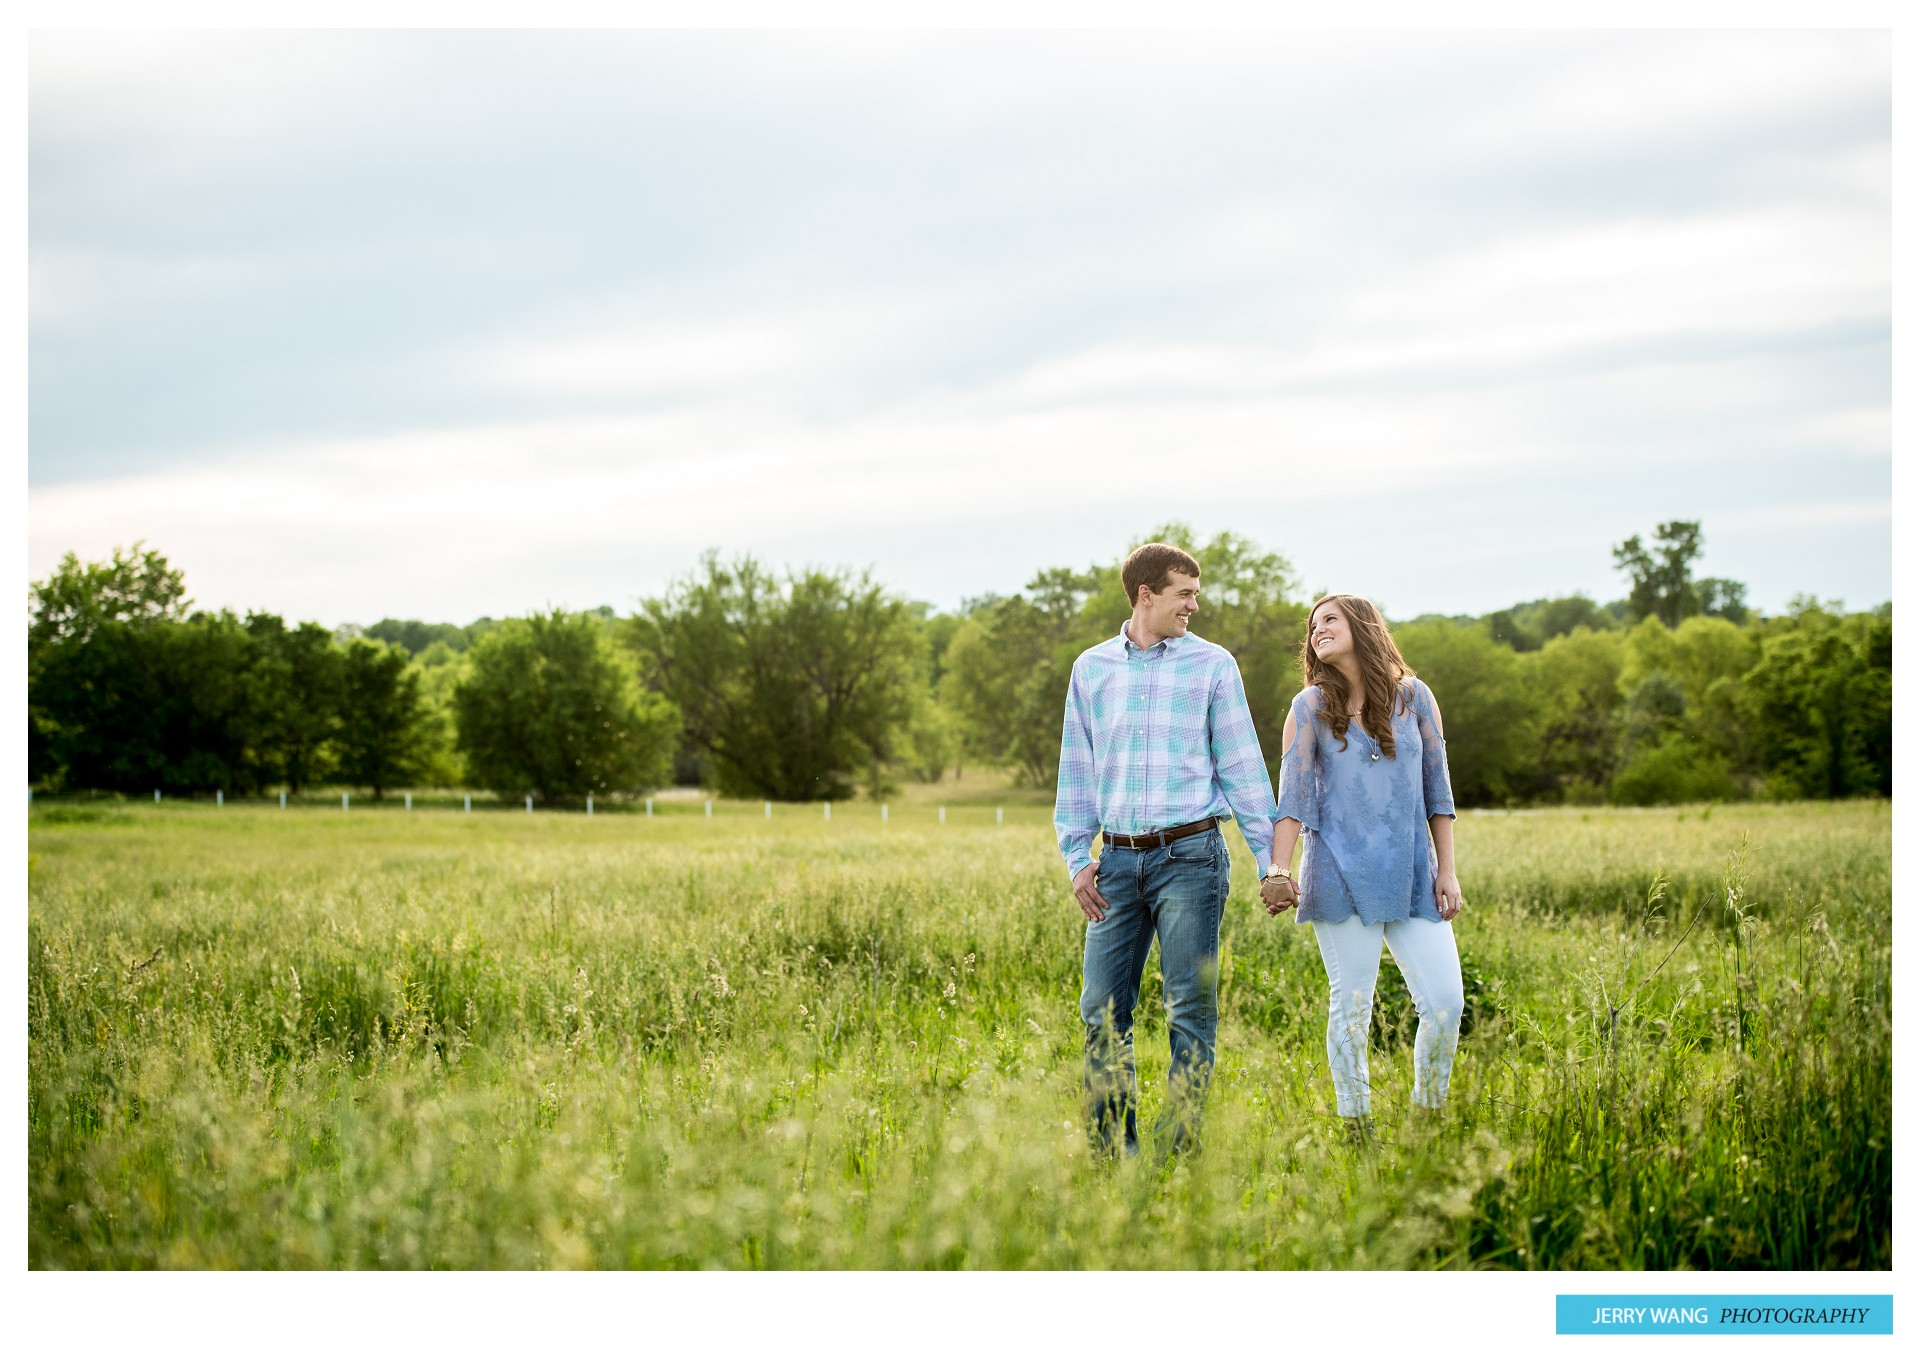 S&B_Spring_Hills_Kansas_Hickory_Creek_Engagement_Session 7